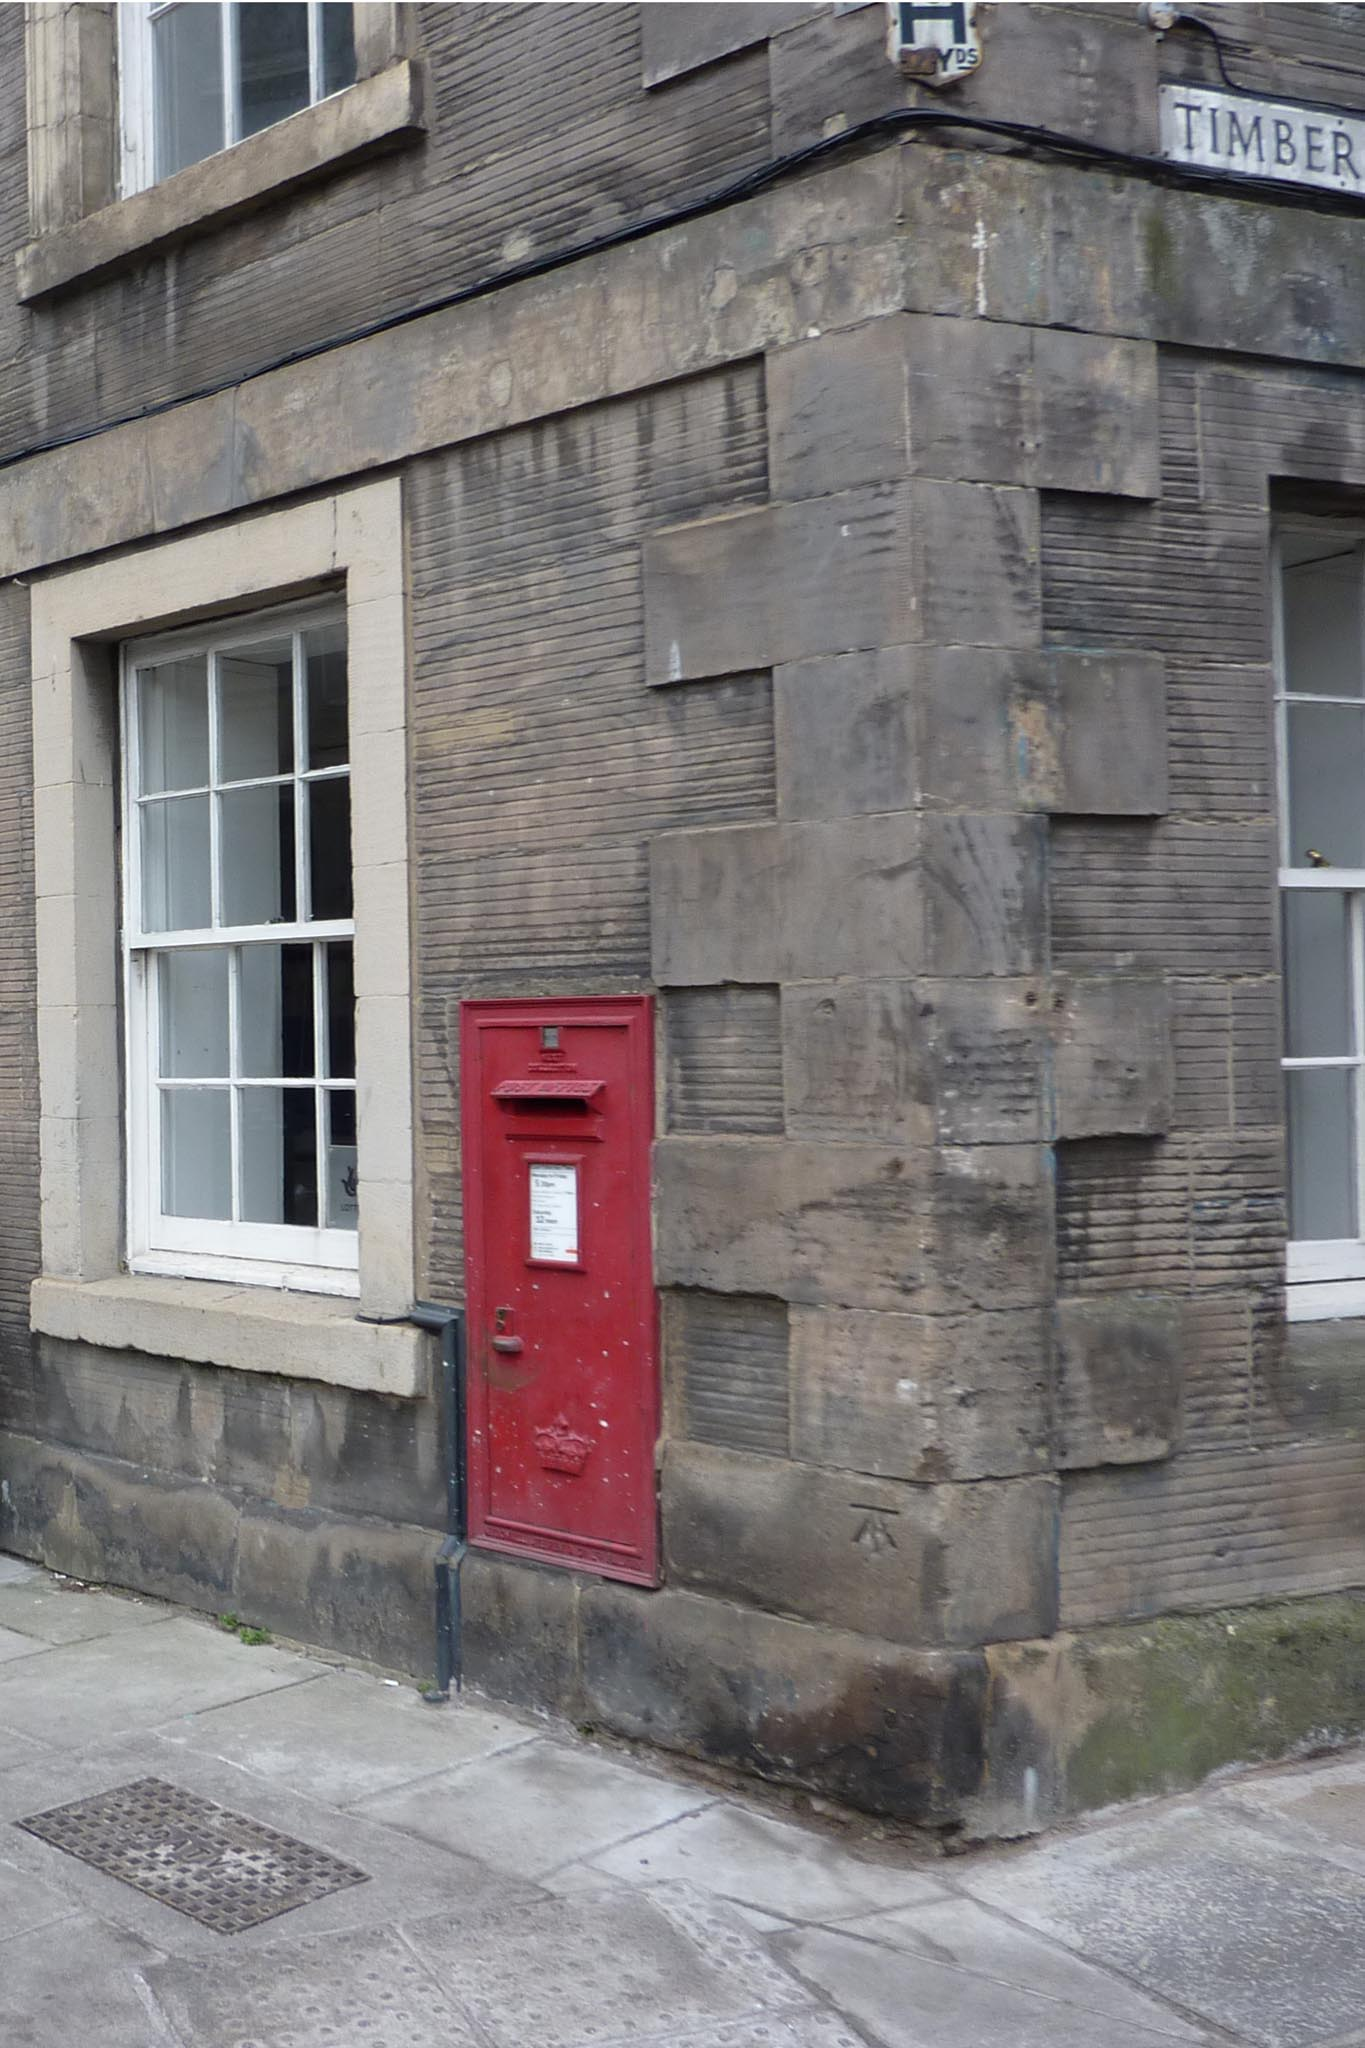 ER/Scottish Crown wall box, 1950s, Edinburgh. Andrew R Young